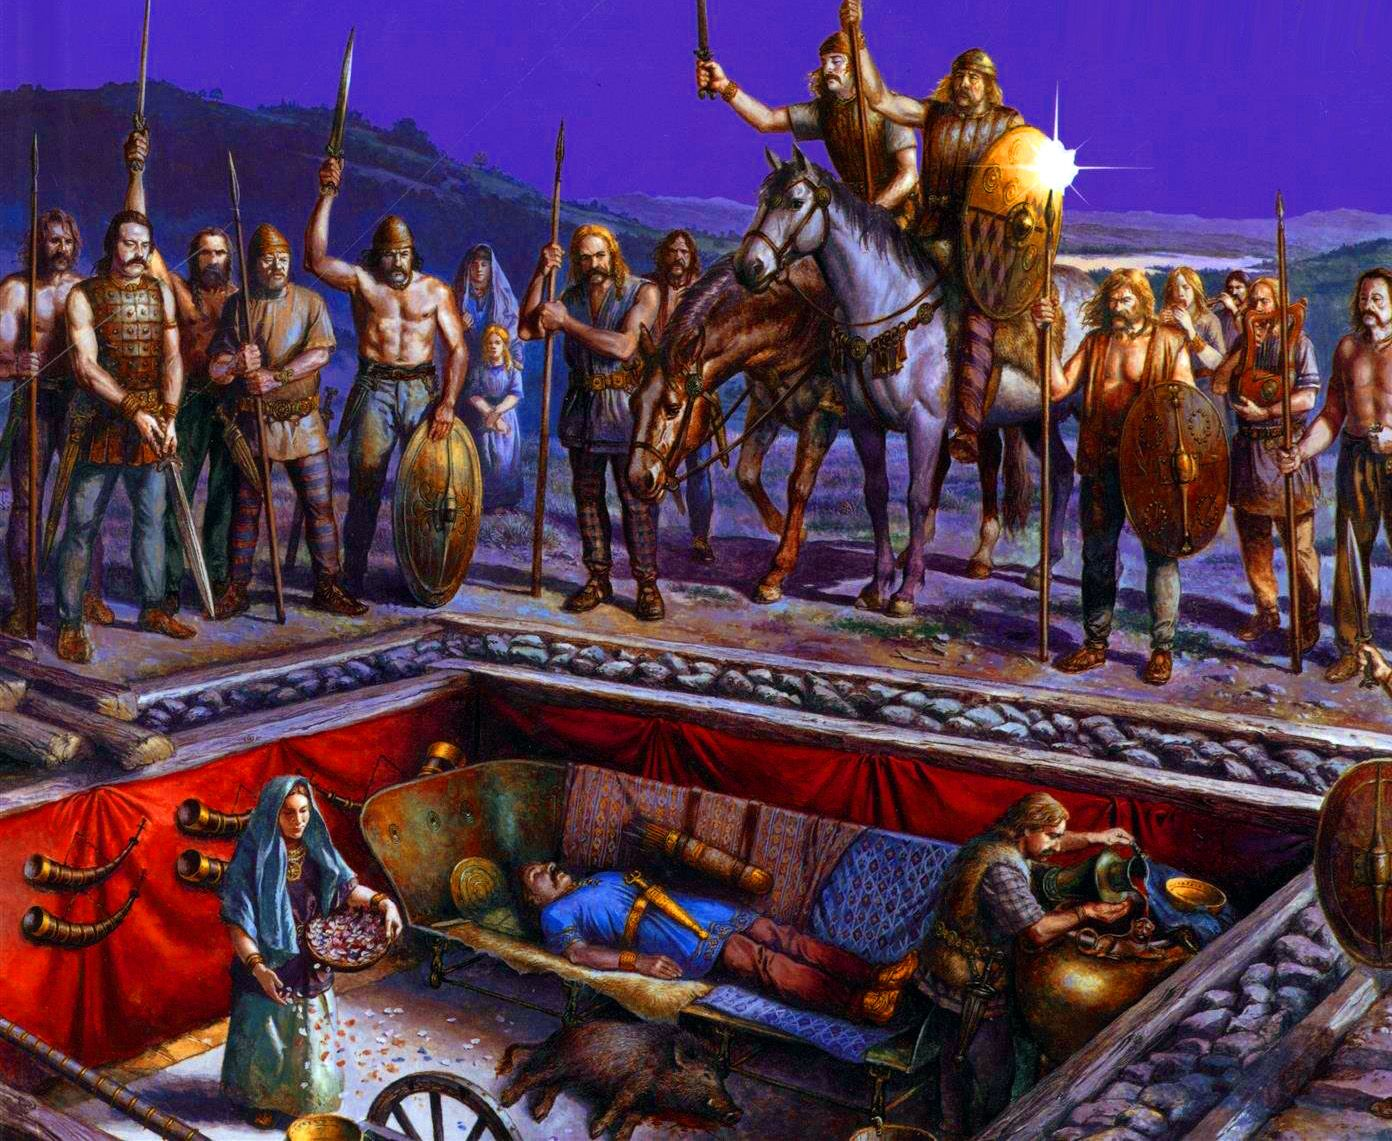 Gallic burial rite for the chieftain | Ancient humans, Ancient warfare,  Ancient celts